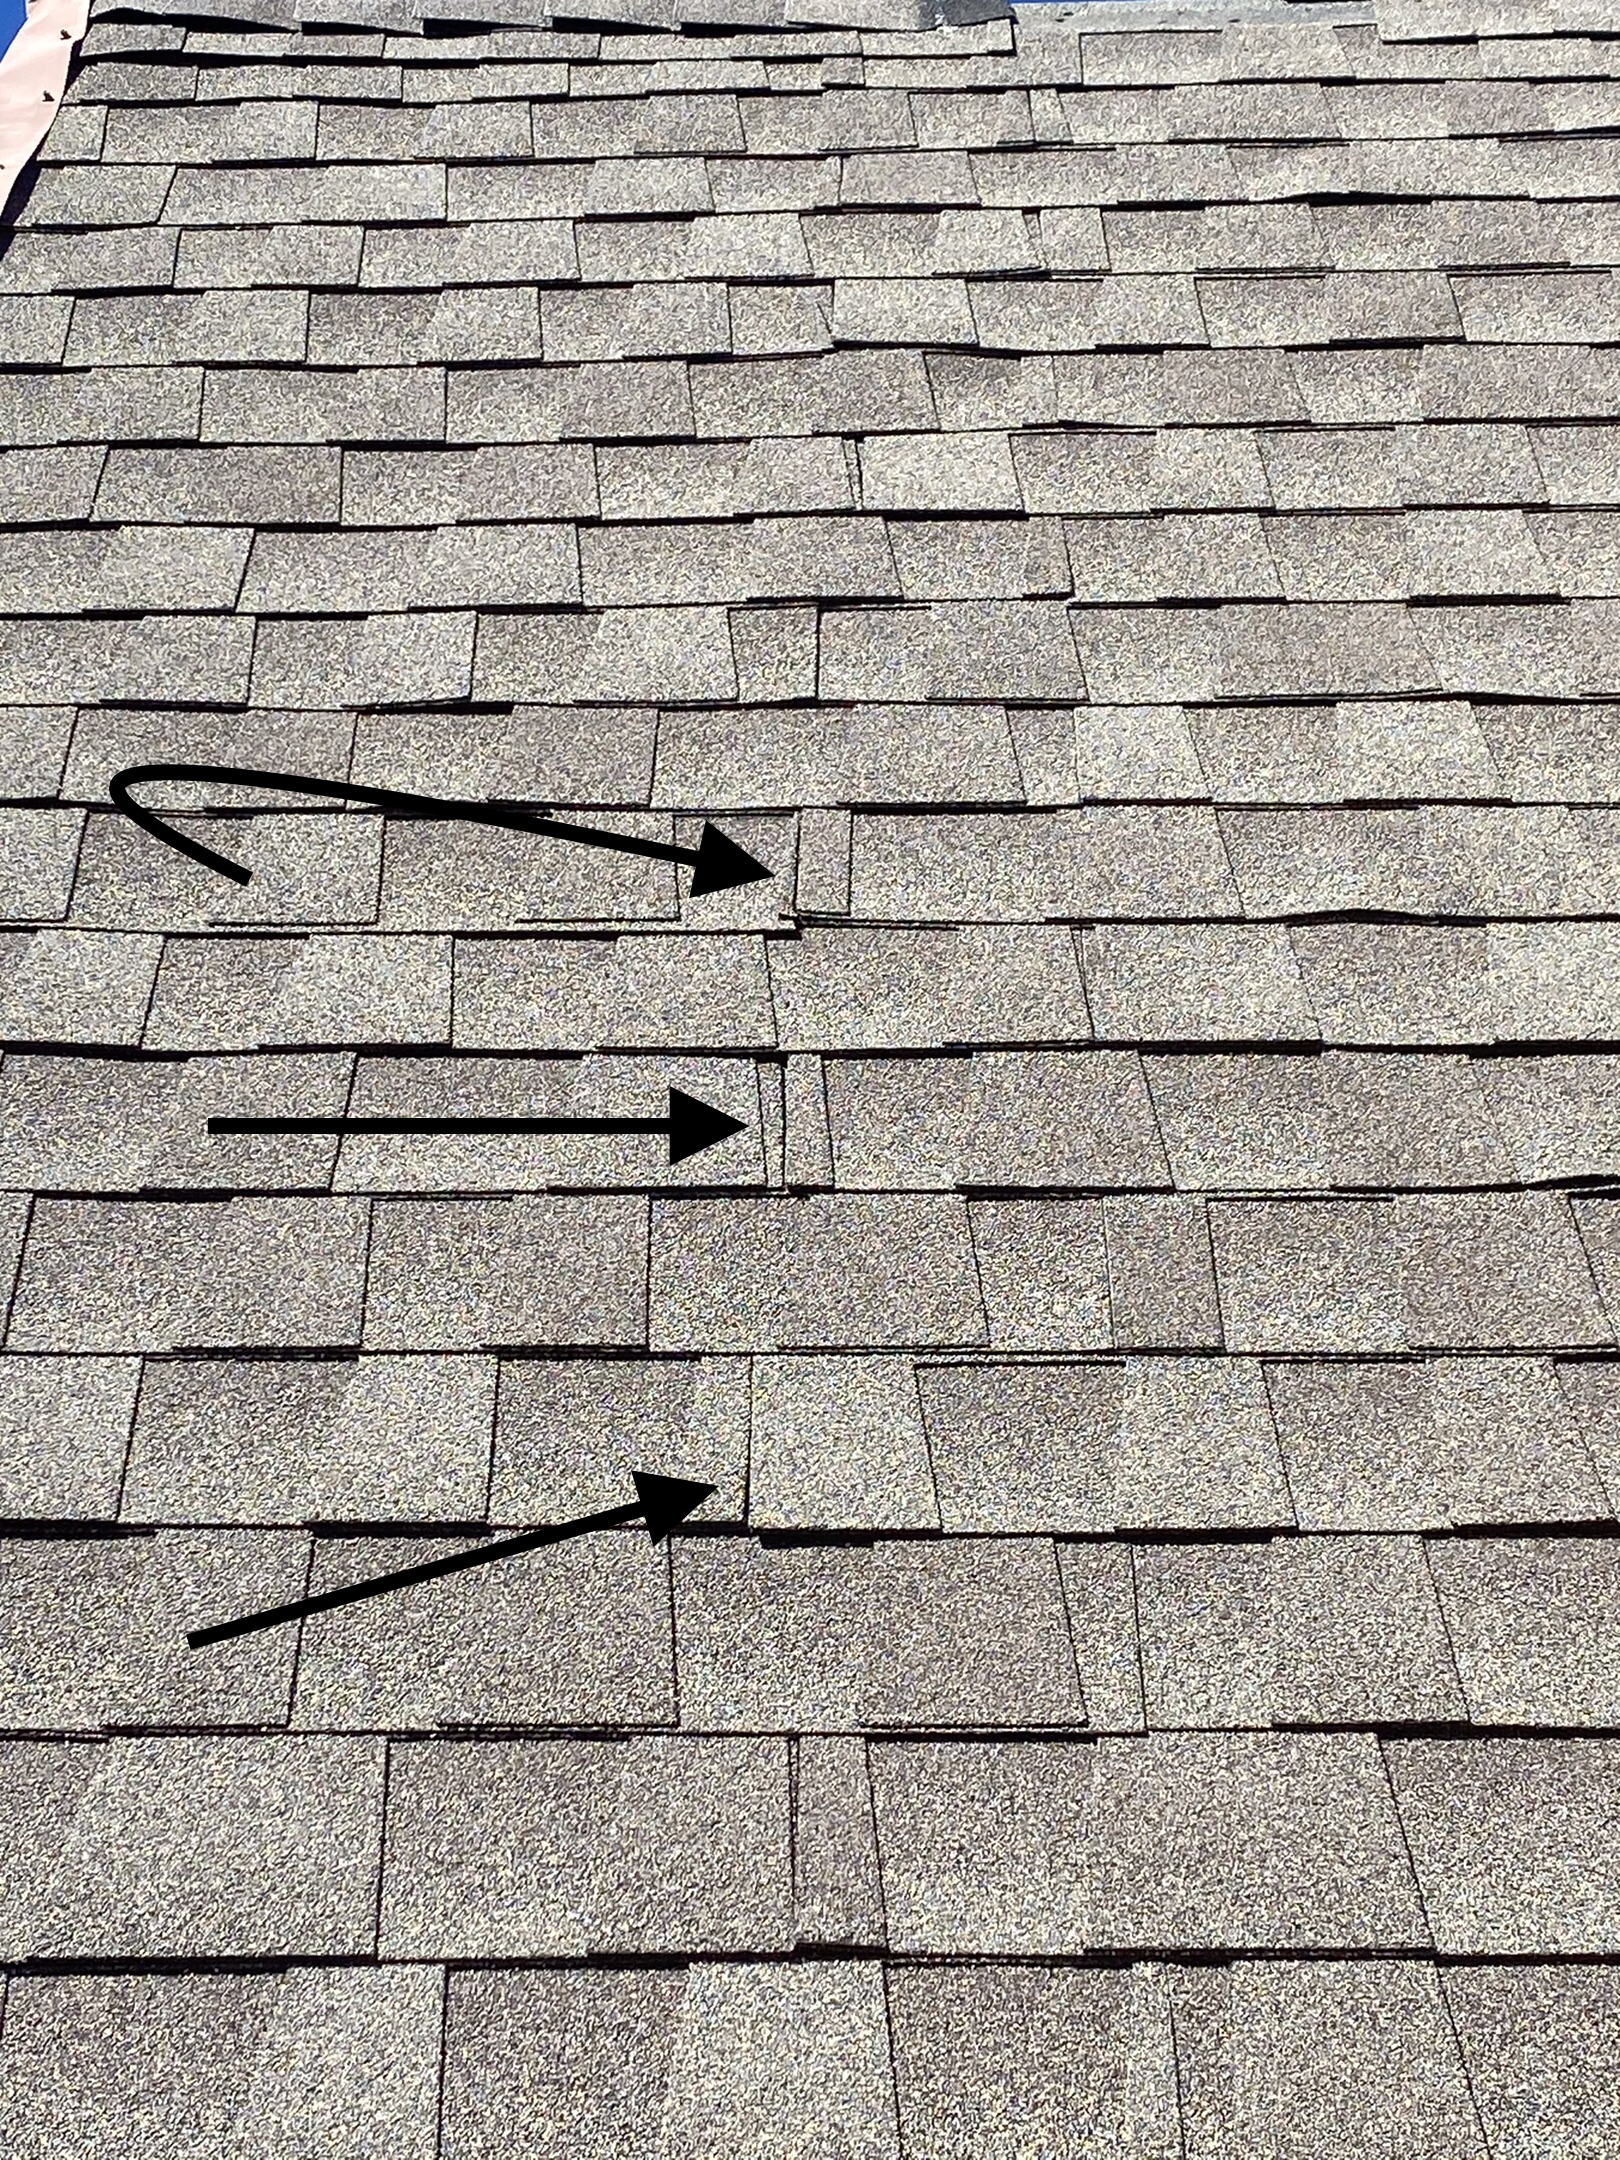 This is a picture of shingles that were not staggered correctly